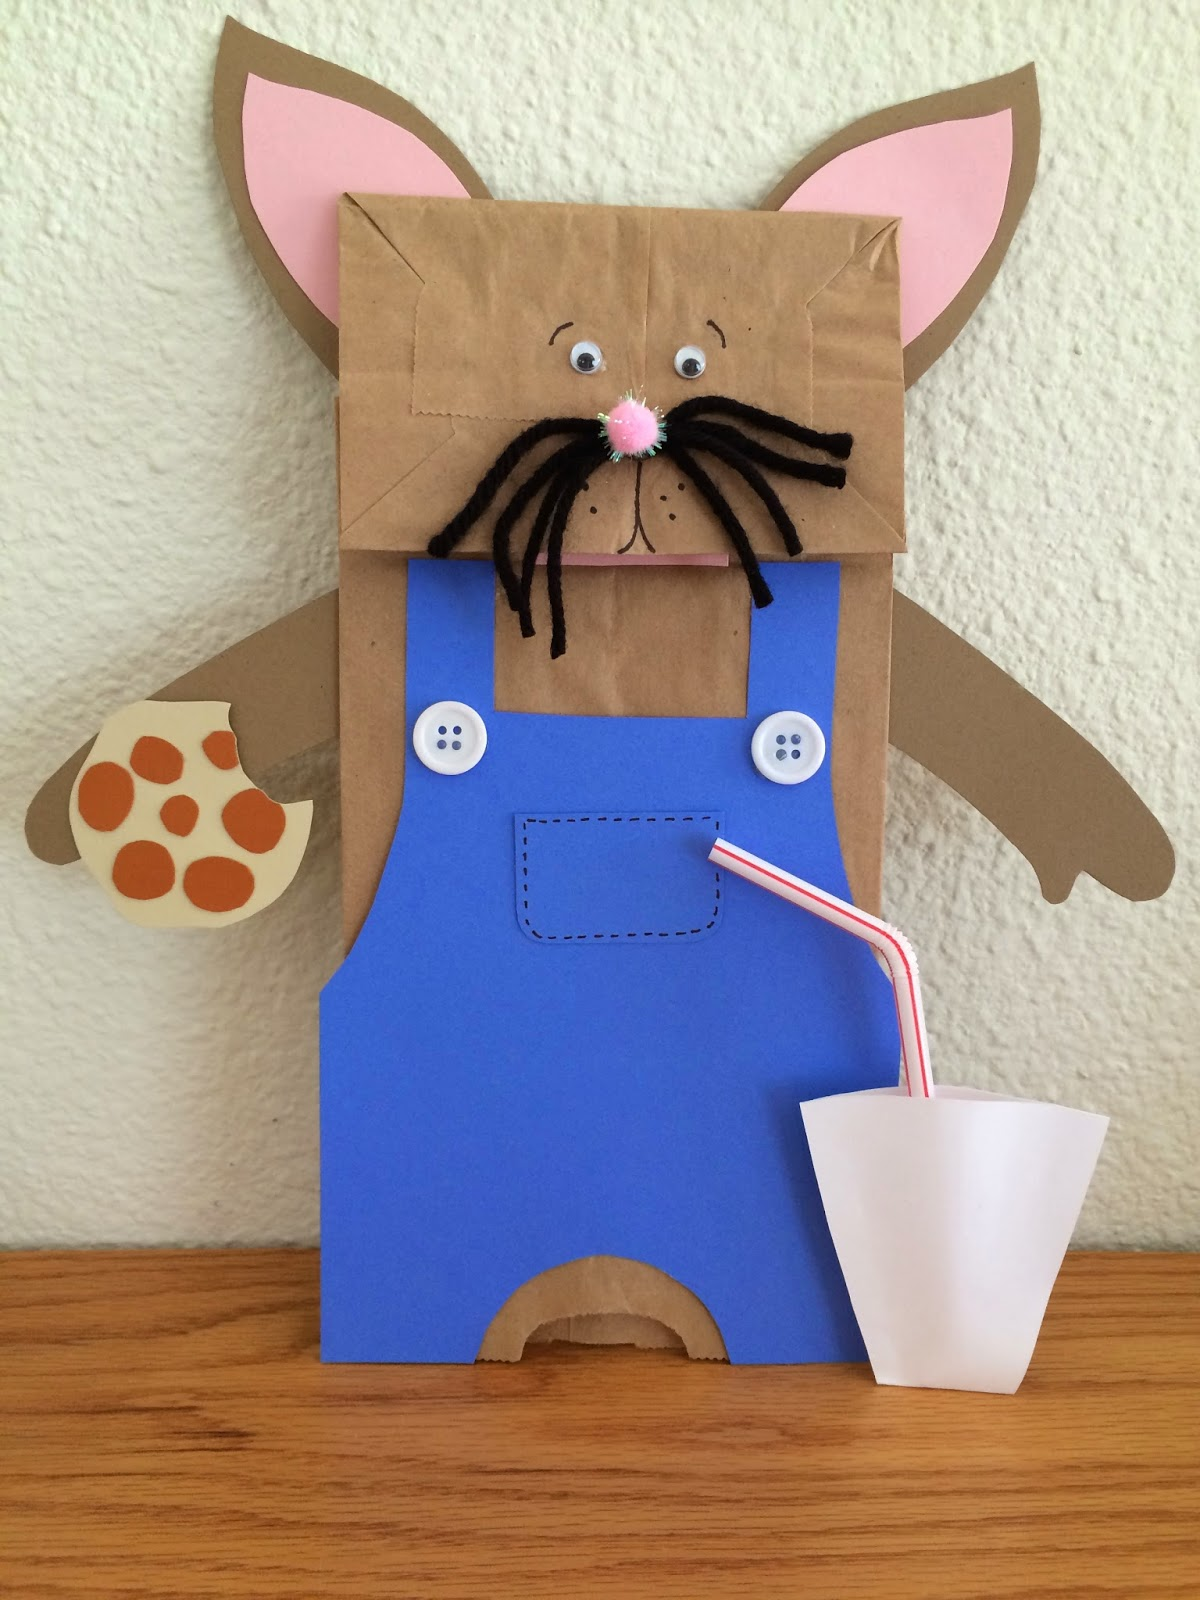 Kathy S Art Project Ideas If You Give A Mouse A Cookie Mouse Puppet Art Project